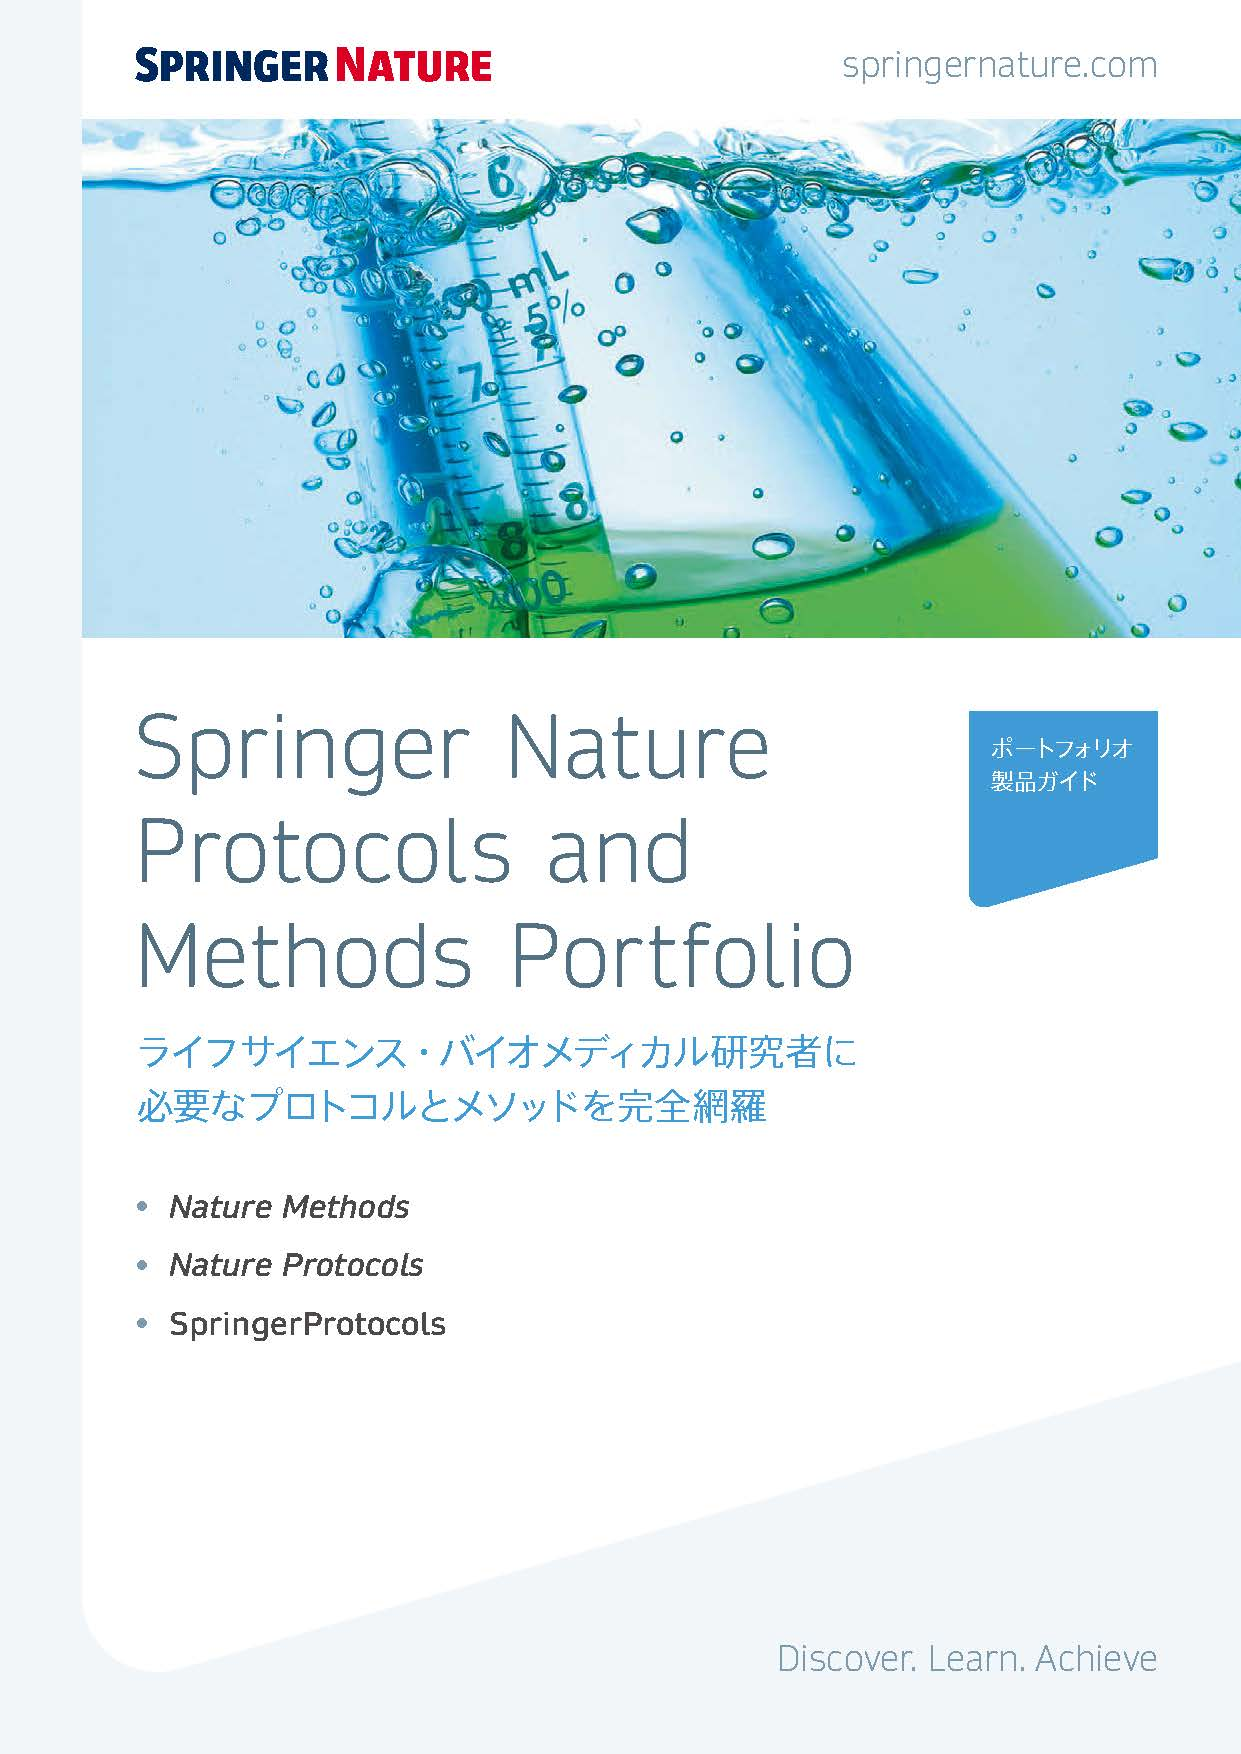 Springer Nature Protocols and Methodsパンフレット